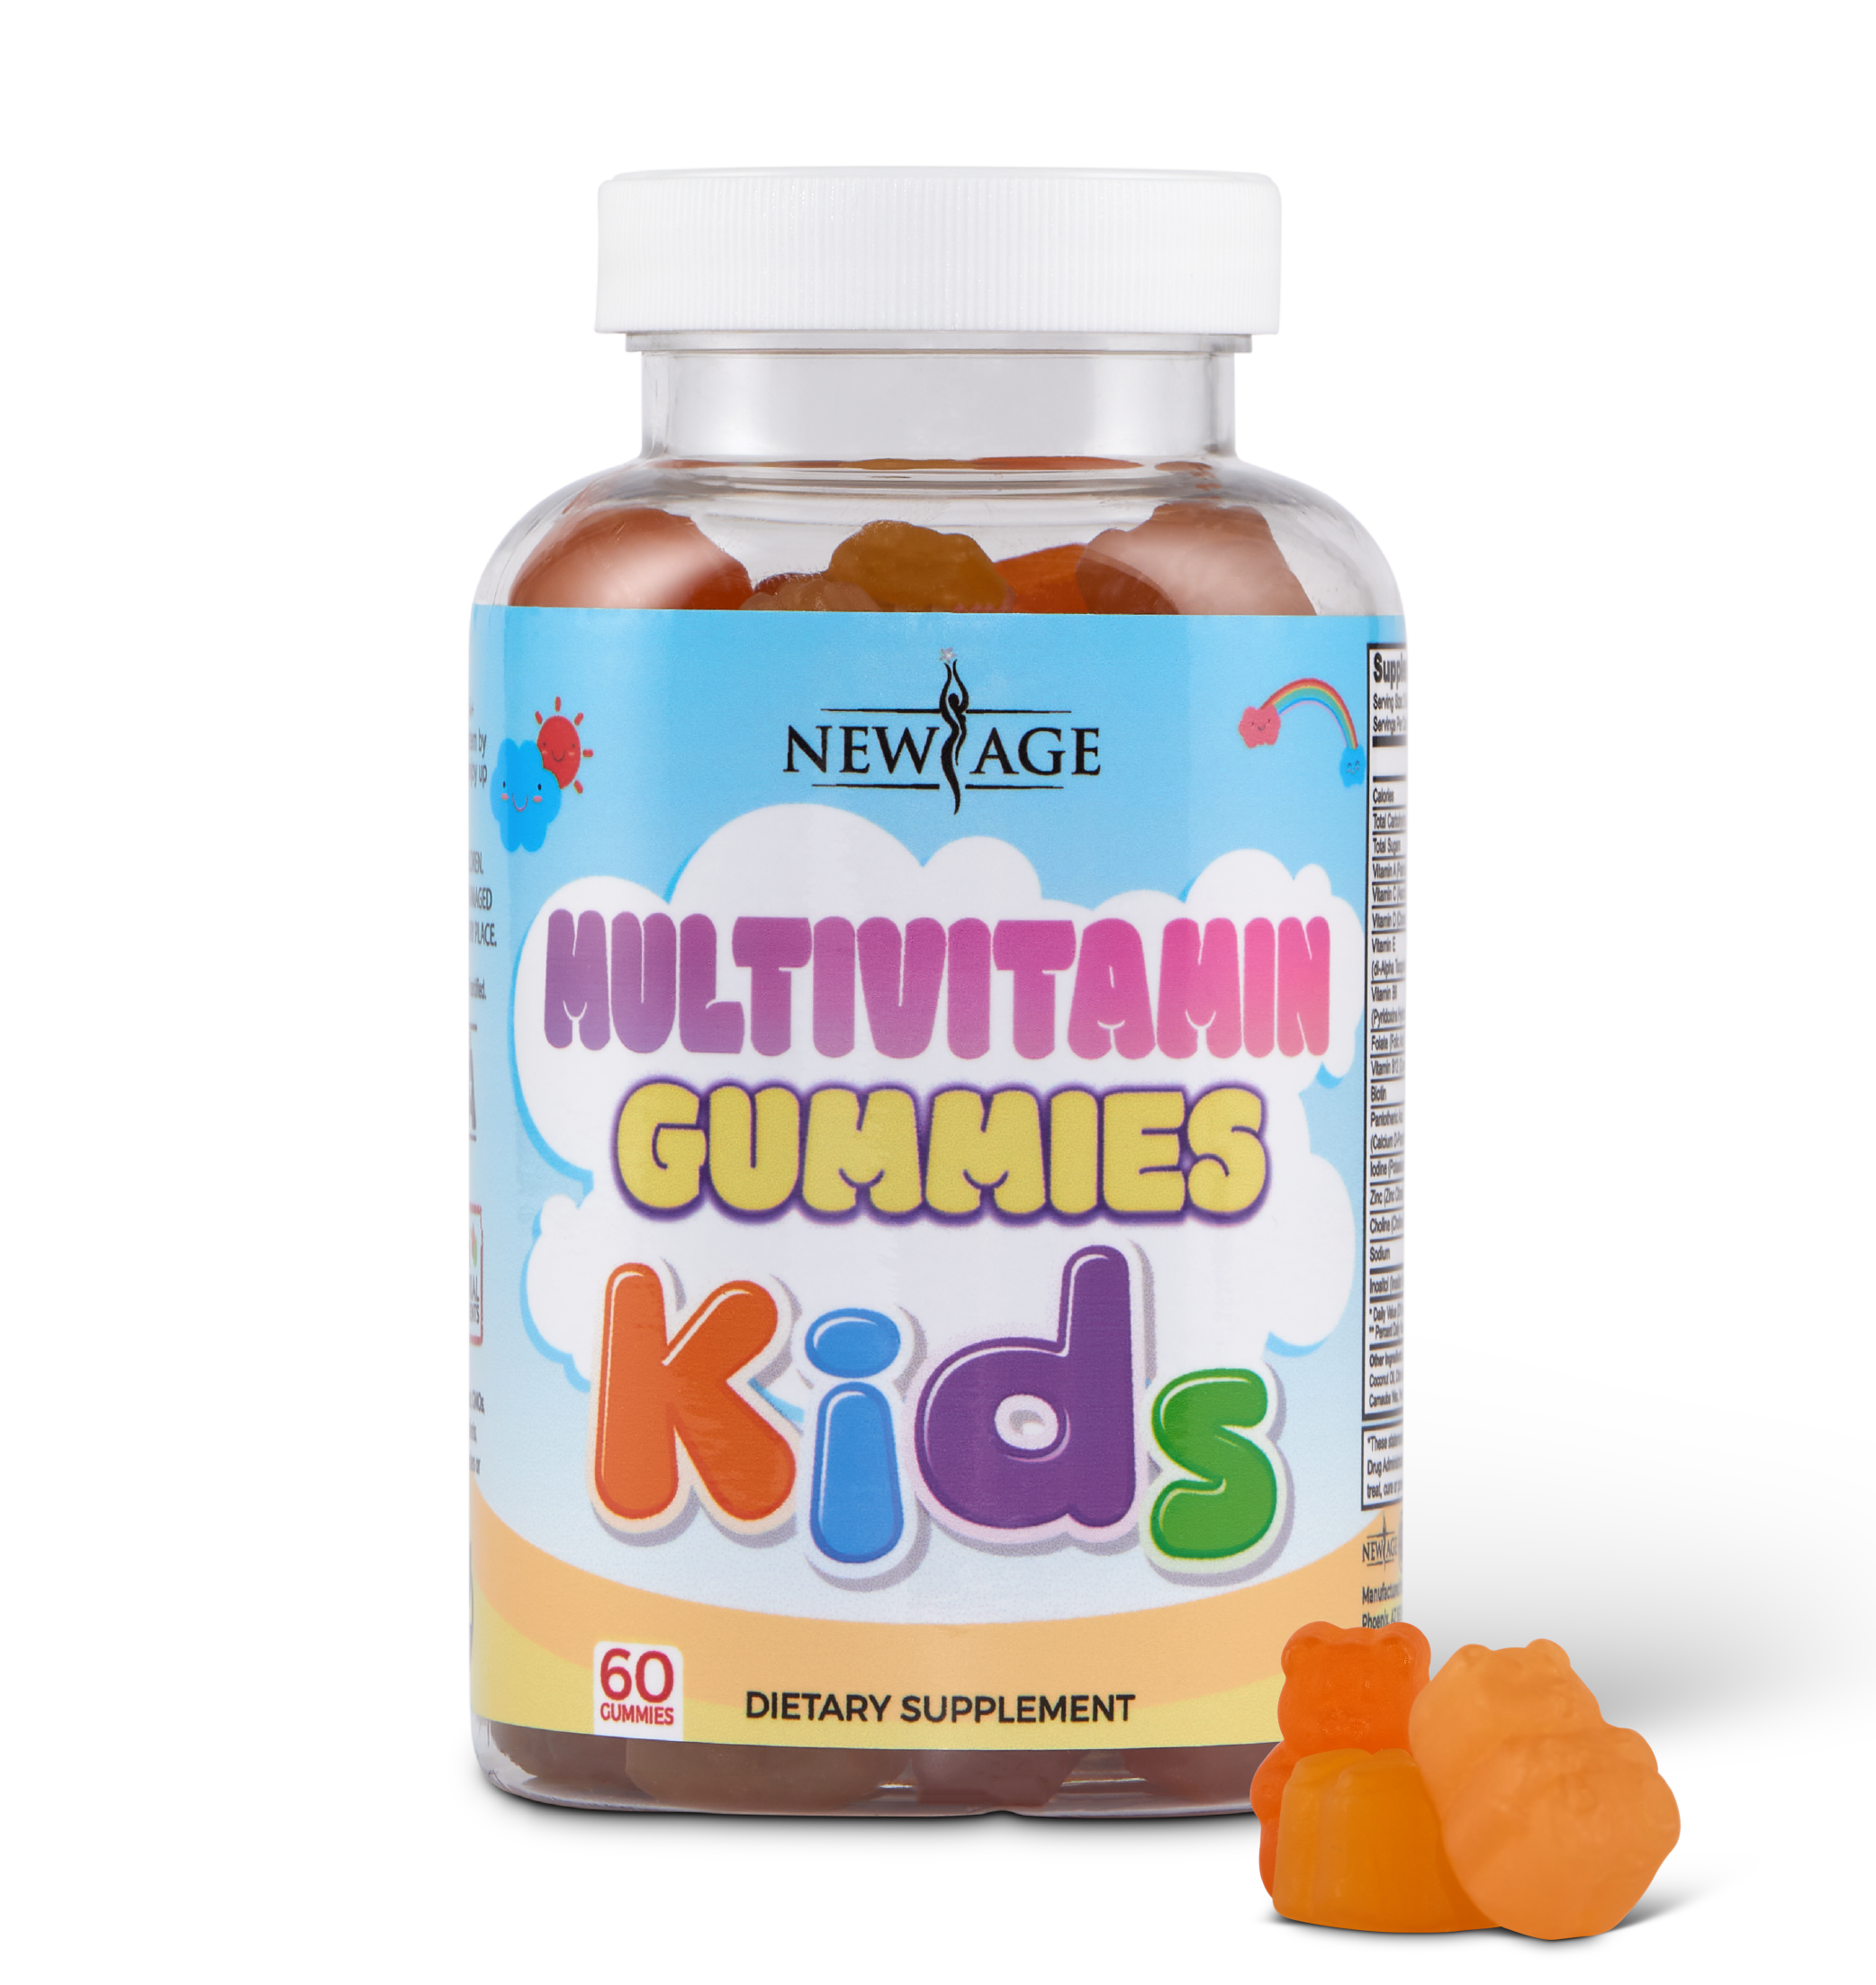 New Age Kids Multivitamin Gummies - One Bottle